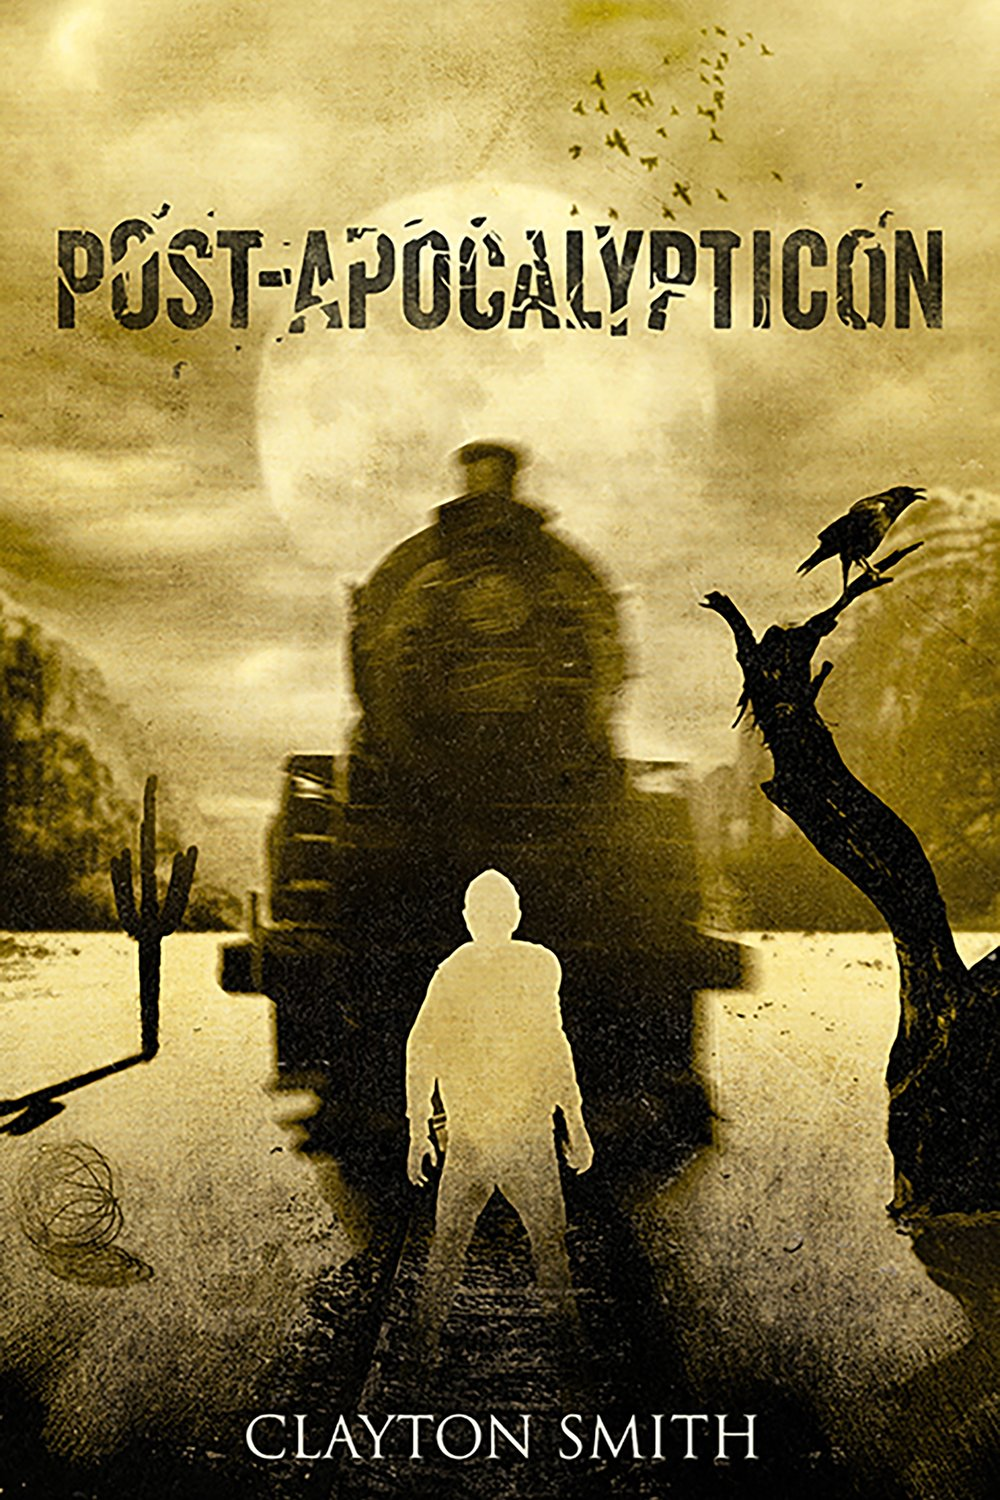 "Post-Apocalypticon - The second book in the Apocalypticon series finds Ben Fogelvee on a post-apocalyptic desert adventure, fighting for survival against snakes and cults and messengers and cliff-dwellers and all manner of after-doomsday weirdness in an adventure that's ""hilarious, harrowing, and heart-wrenching…the perfect sequel!"""